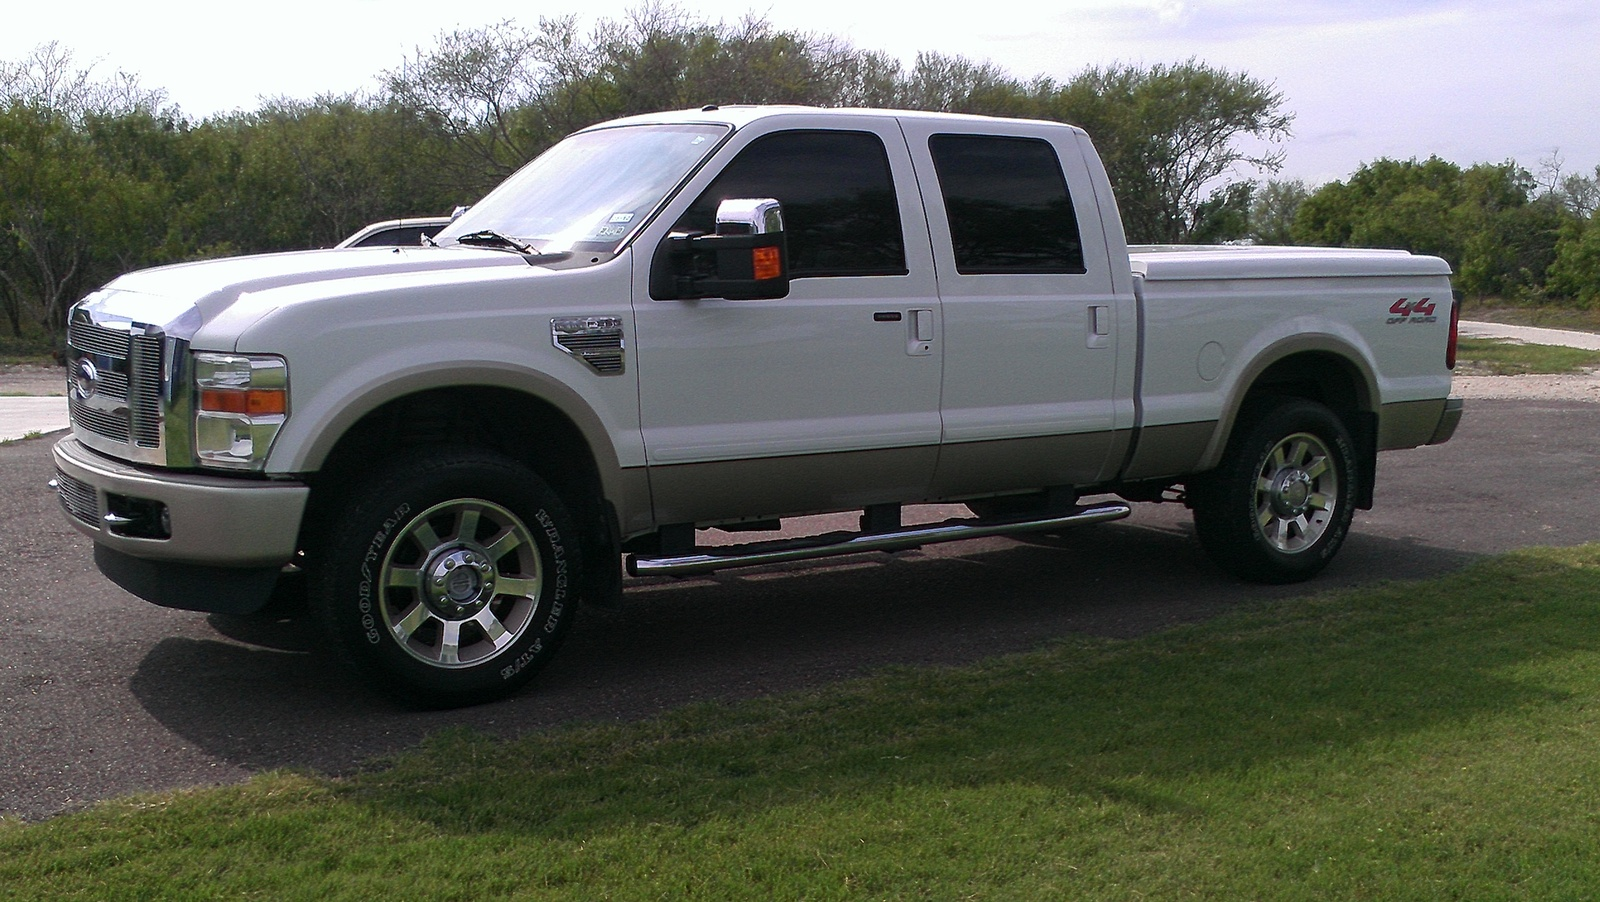 2008 ford f 250 super duty exterior pictures cargurus. Black Bedroom Furniture Sets. Home Design Ideas